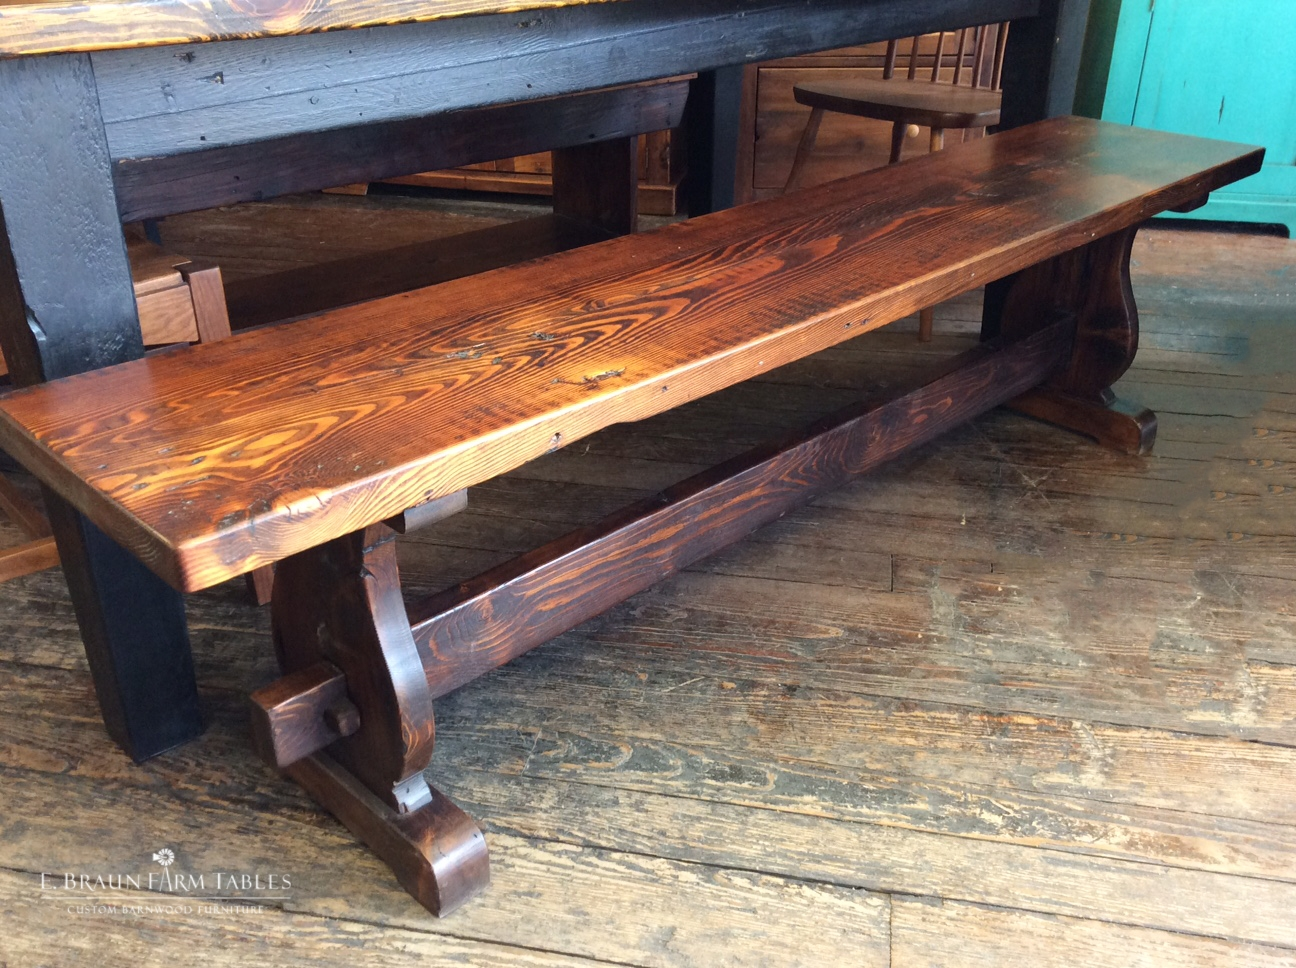 Vase Trestle Bench - stained